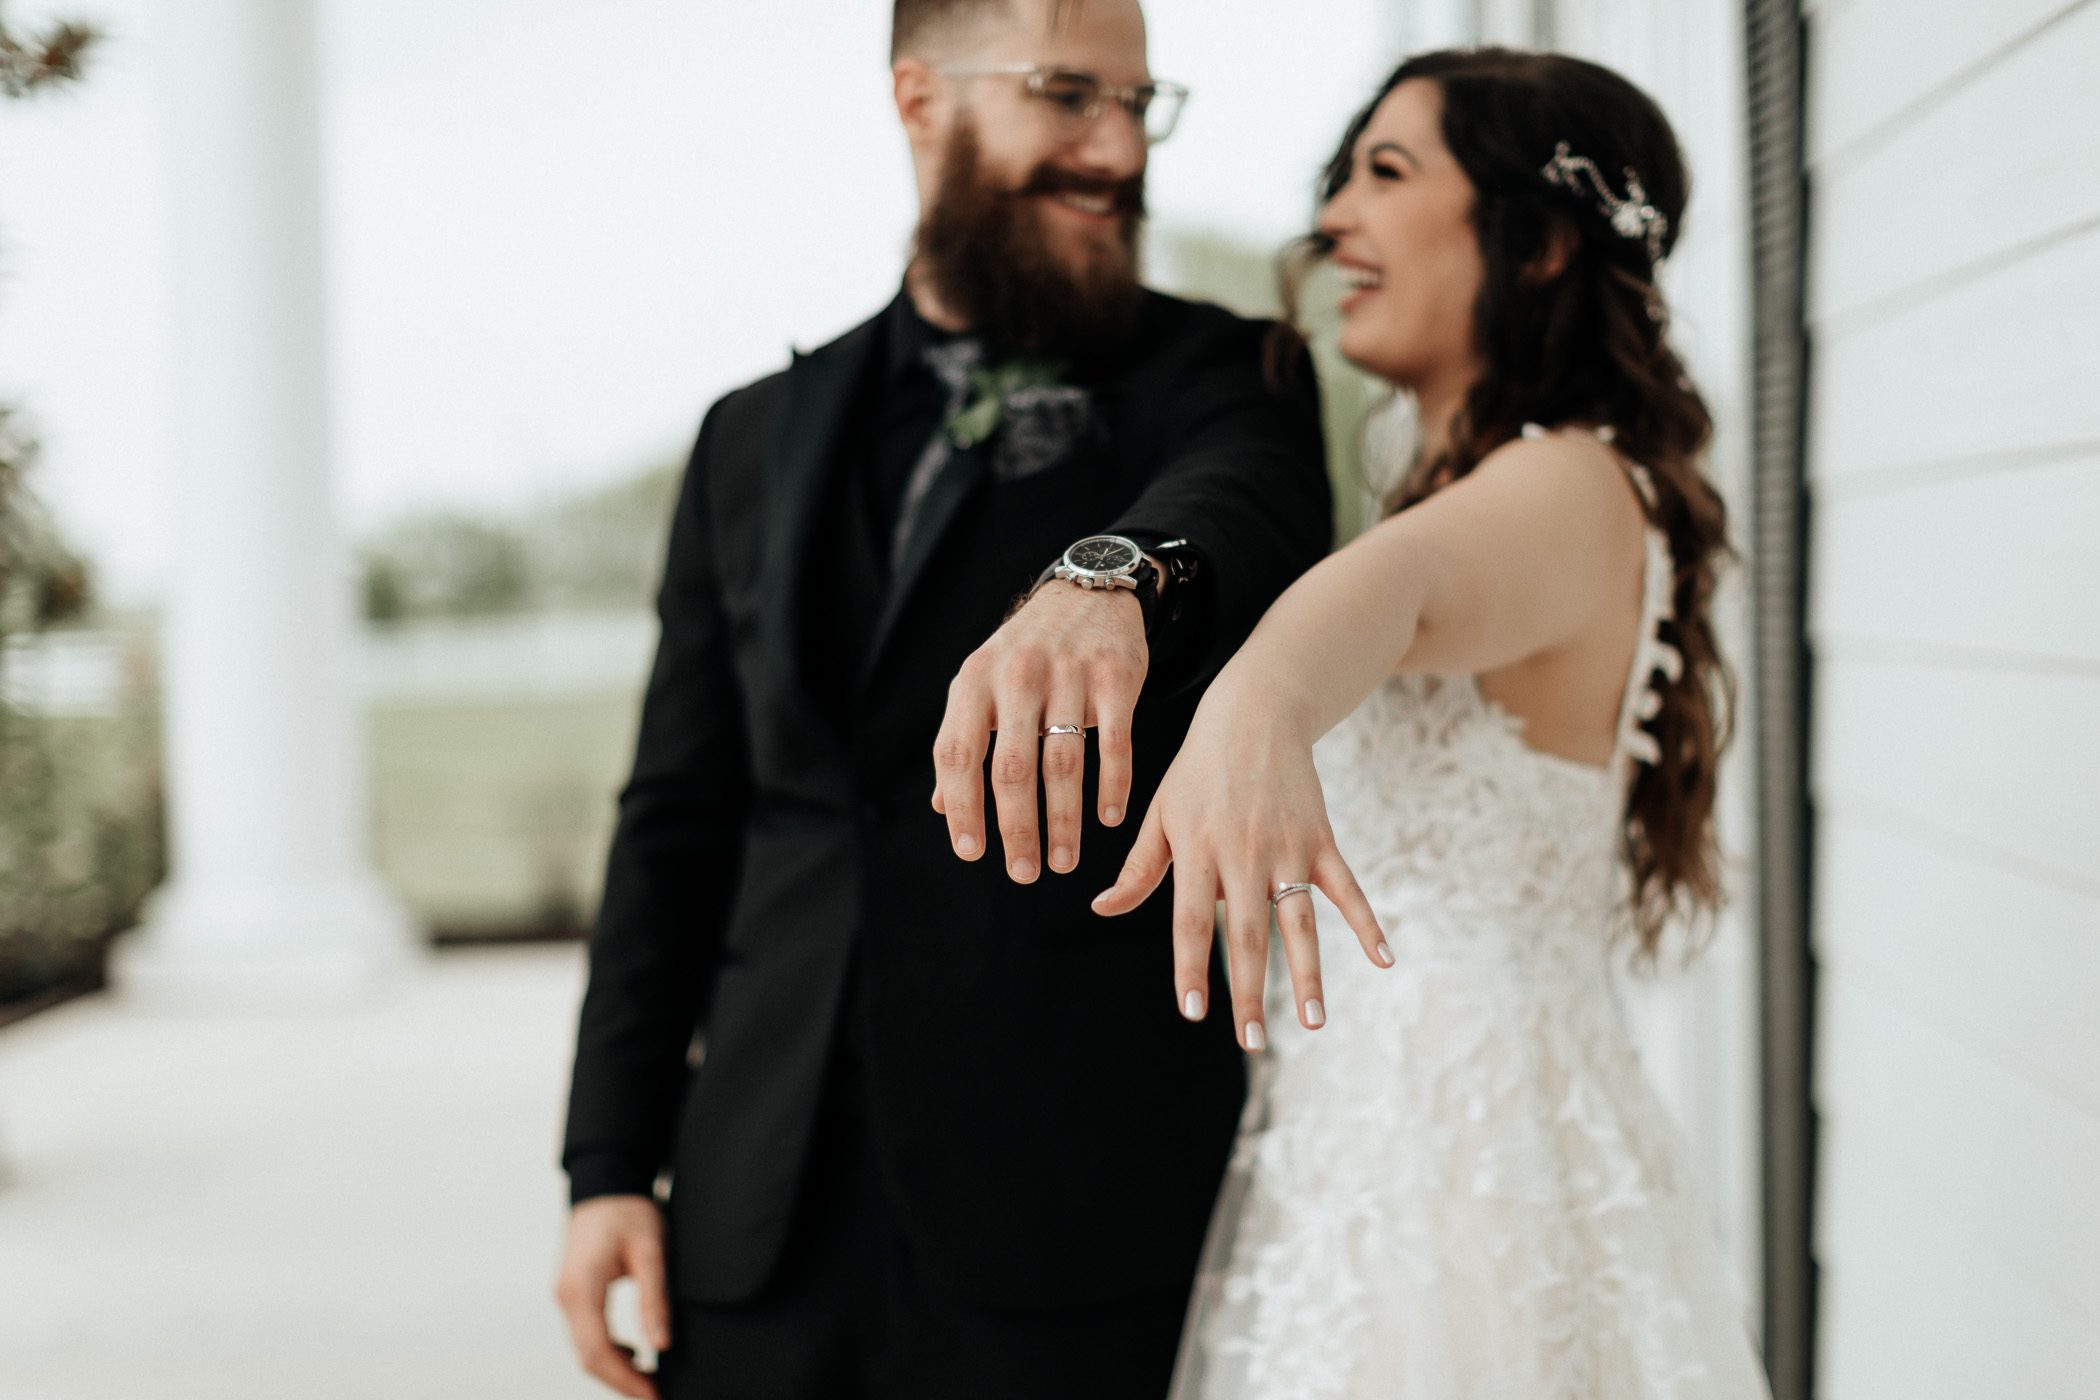 Bride and groom in DFW showing off their new wedding rings for photo